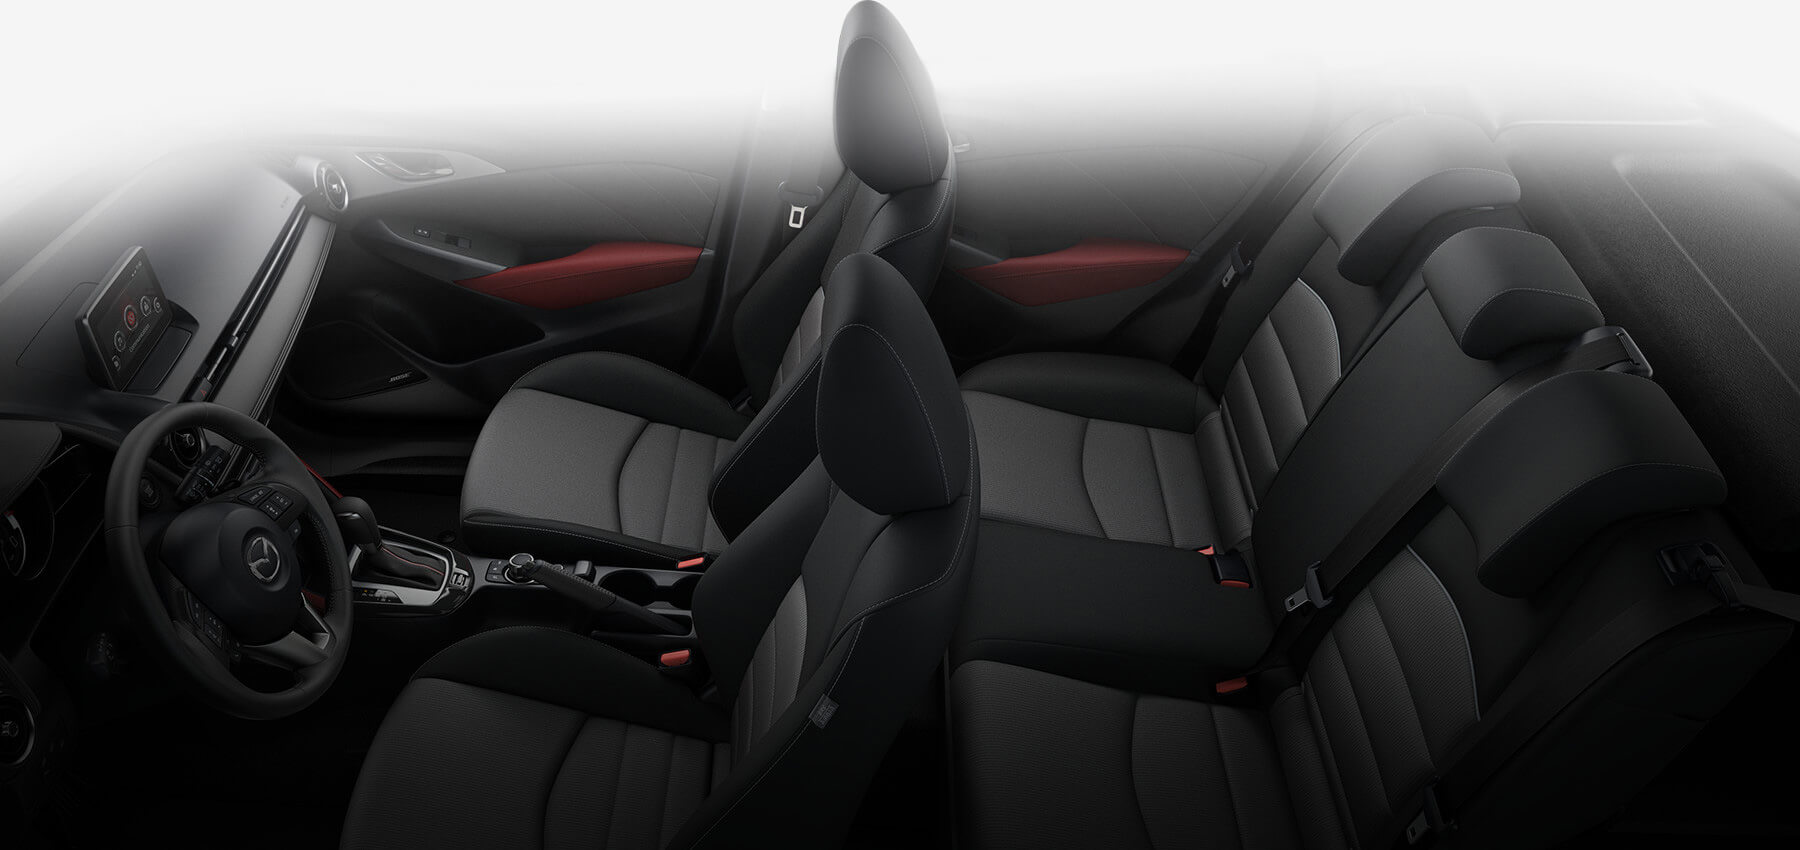 mazda cx interior cloth colors cx3 come which does options subcompact crossover build